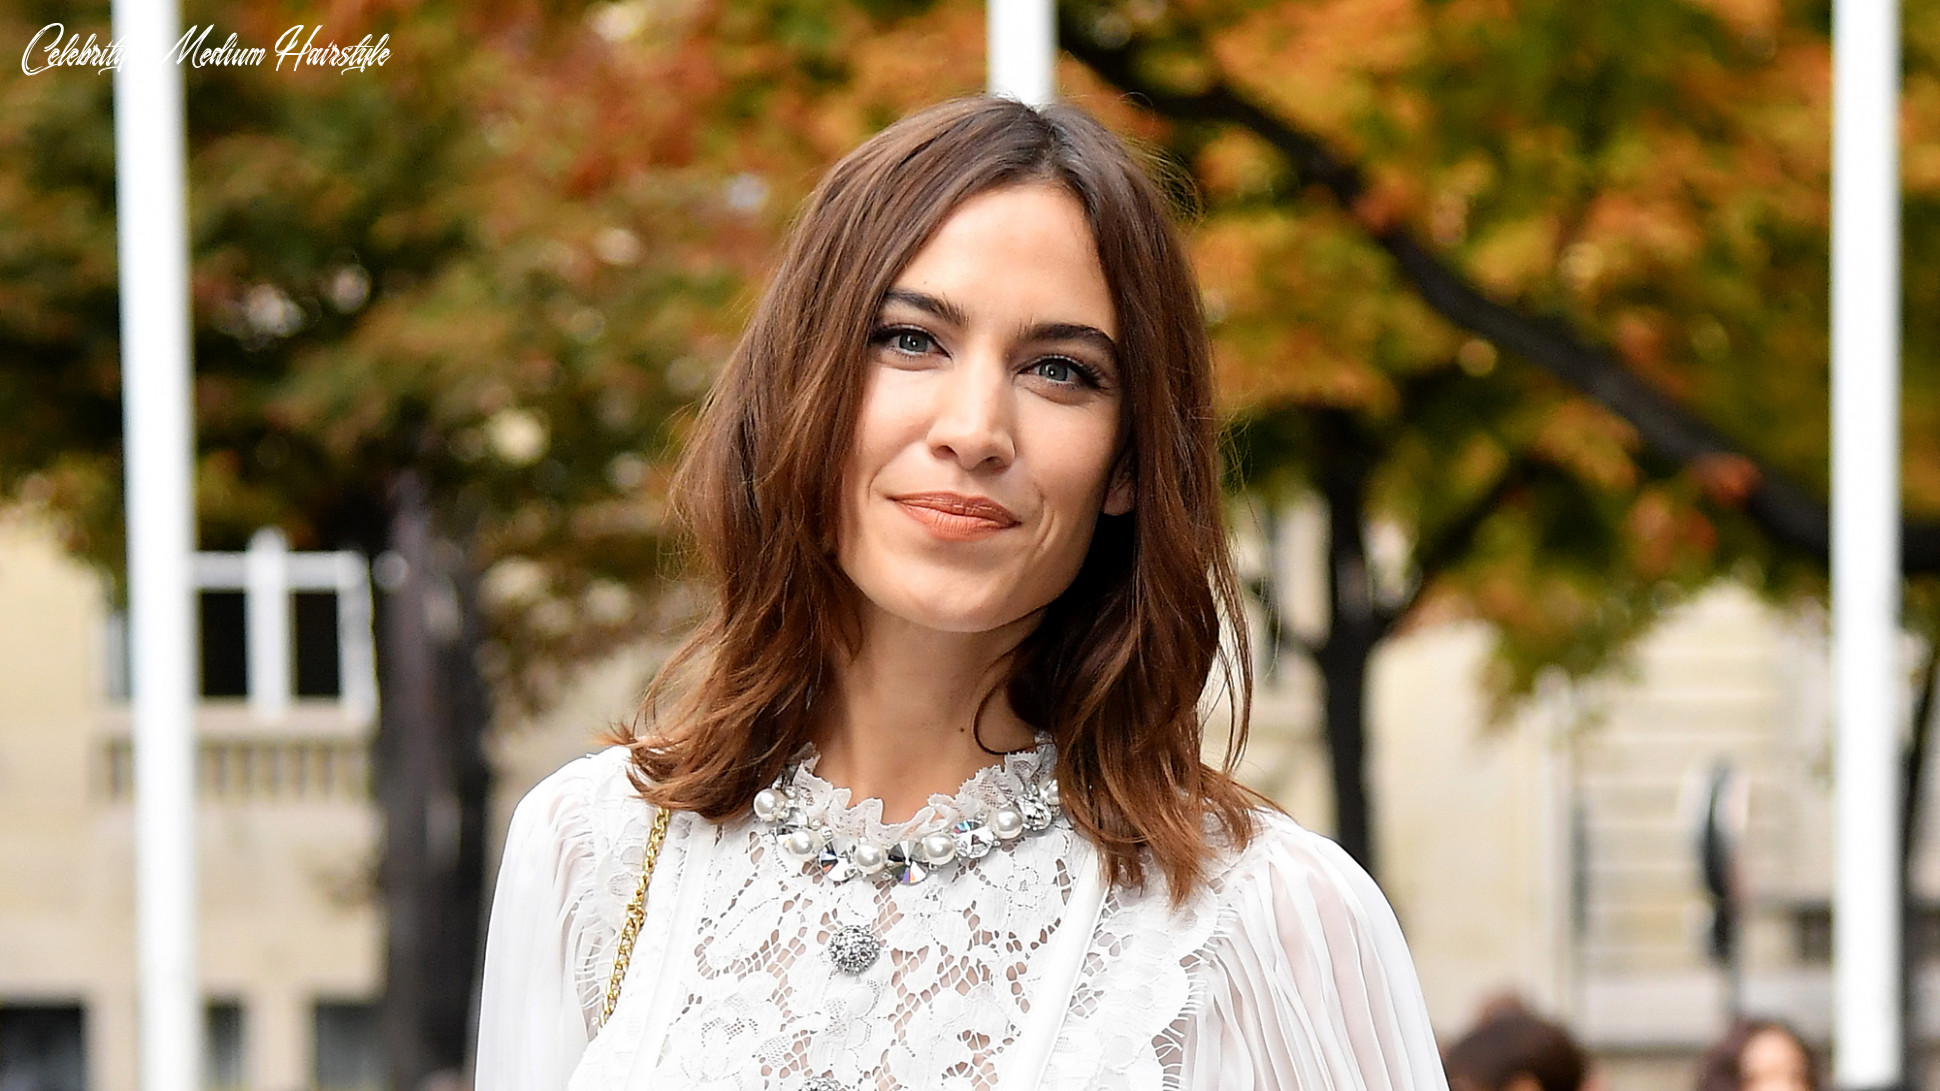 8 medium length hairstyles to take straight to the salon | Marie Claire